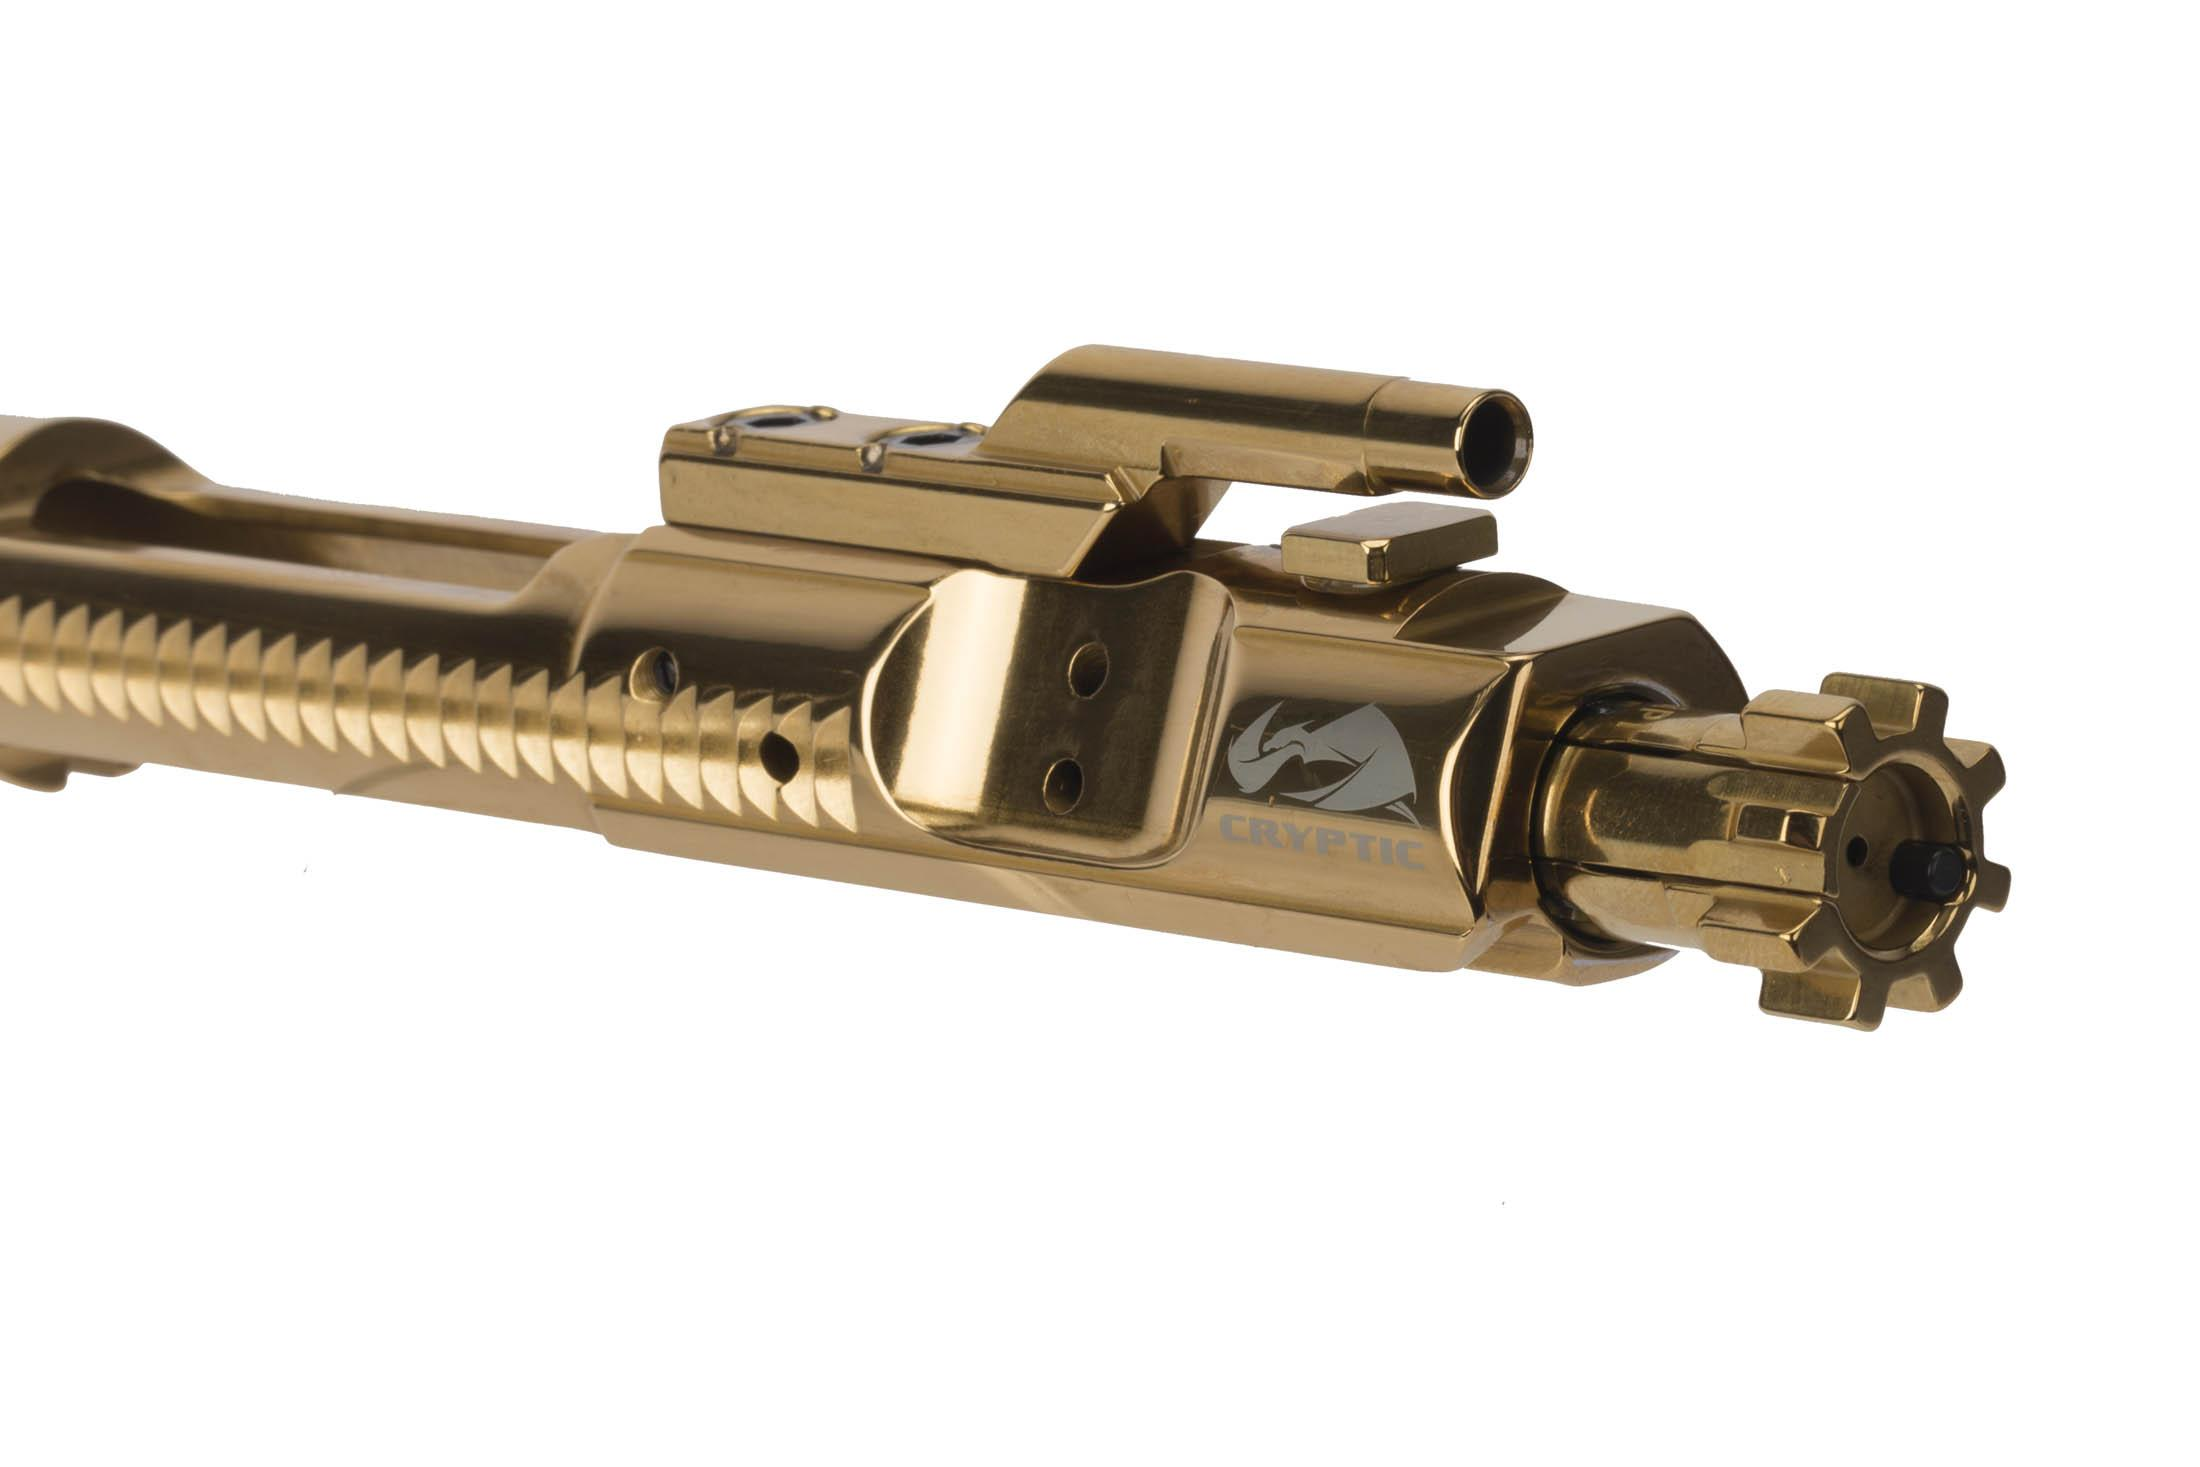 Cryptic Coatings 5.56 NATO AR-15 bcg with Mystic Gold finish has fully MIL-SPEC construction